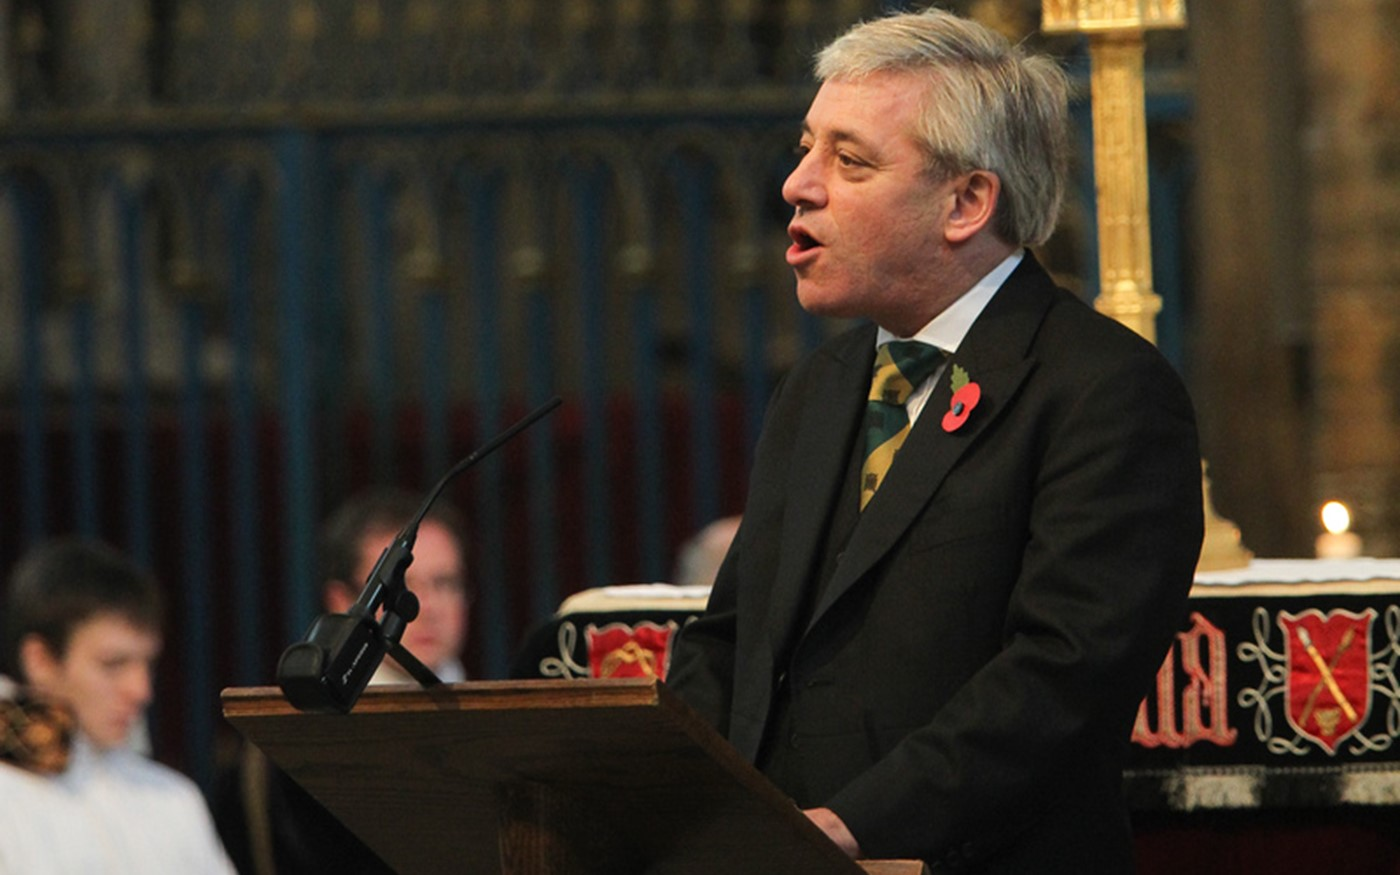 The Right Honourable John Bercow MP, Speaker of The House of Commons, reads Micah 4: 1-3